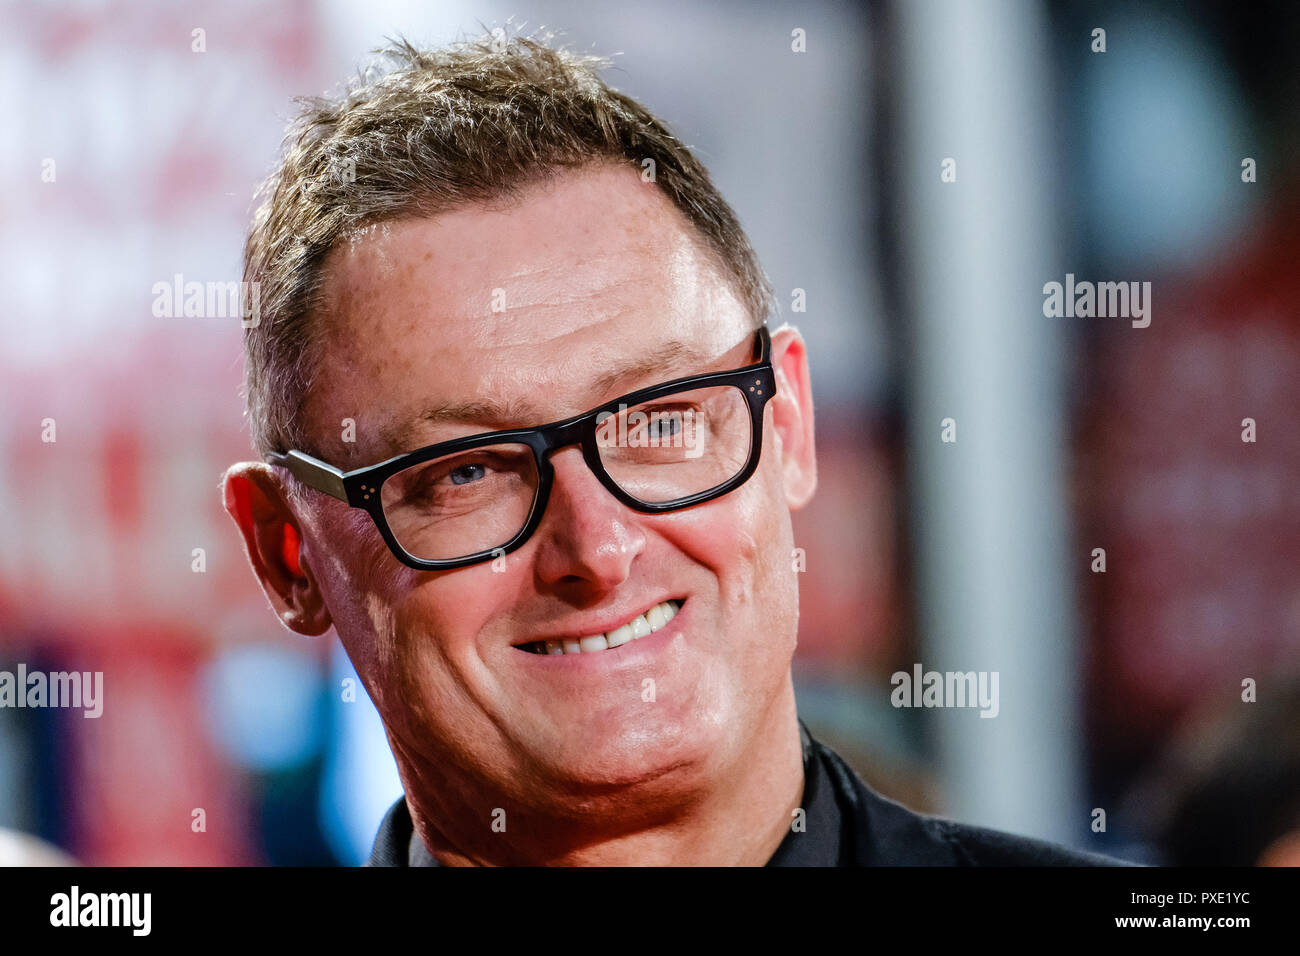 London, UK. 21st Oct 2018. Screenwriter Jeff Pope at the London Film Festival Closing Night Gala of STAN AND OLLIE on Sunday 21 October 2018 held at Cineworld Leicester Square, London. Pictured: Jeff Pope. Picture by Julie Edwards. Credit: Julie Edwards/Alamy Live News - Stock Image